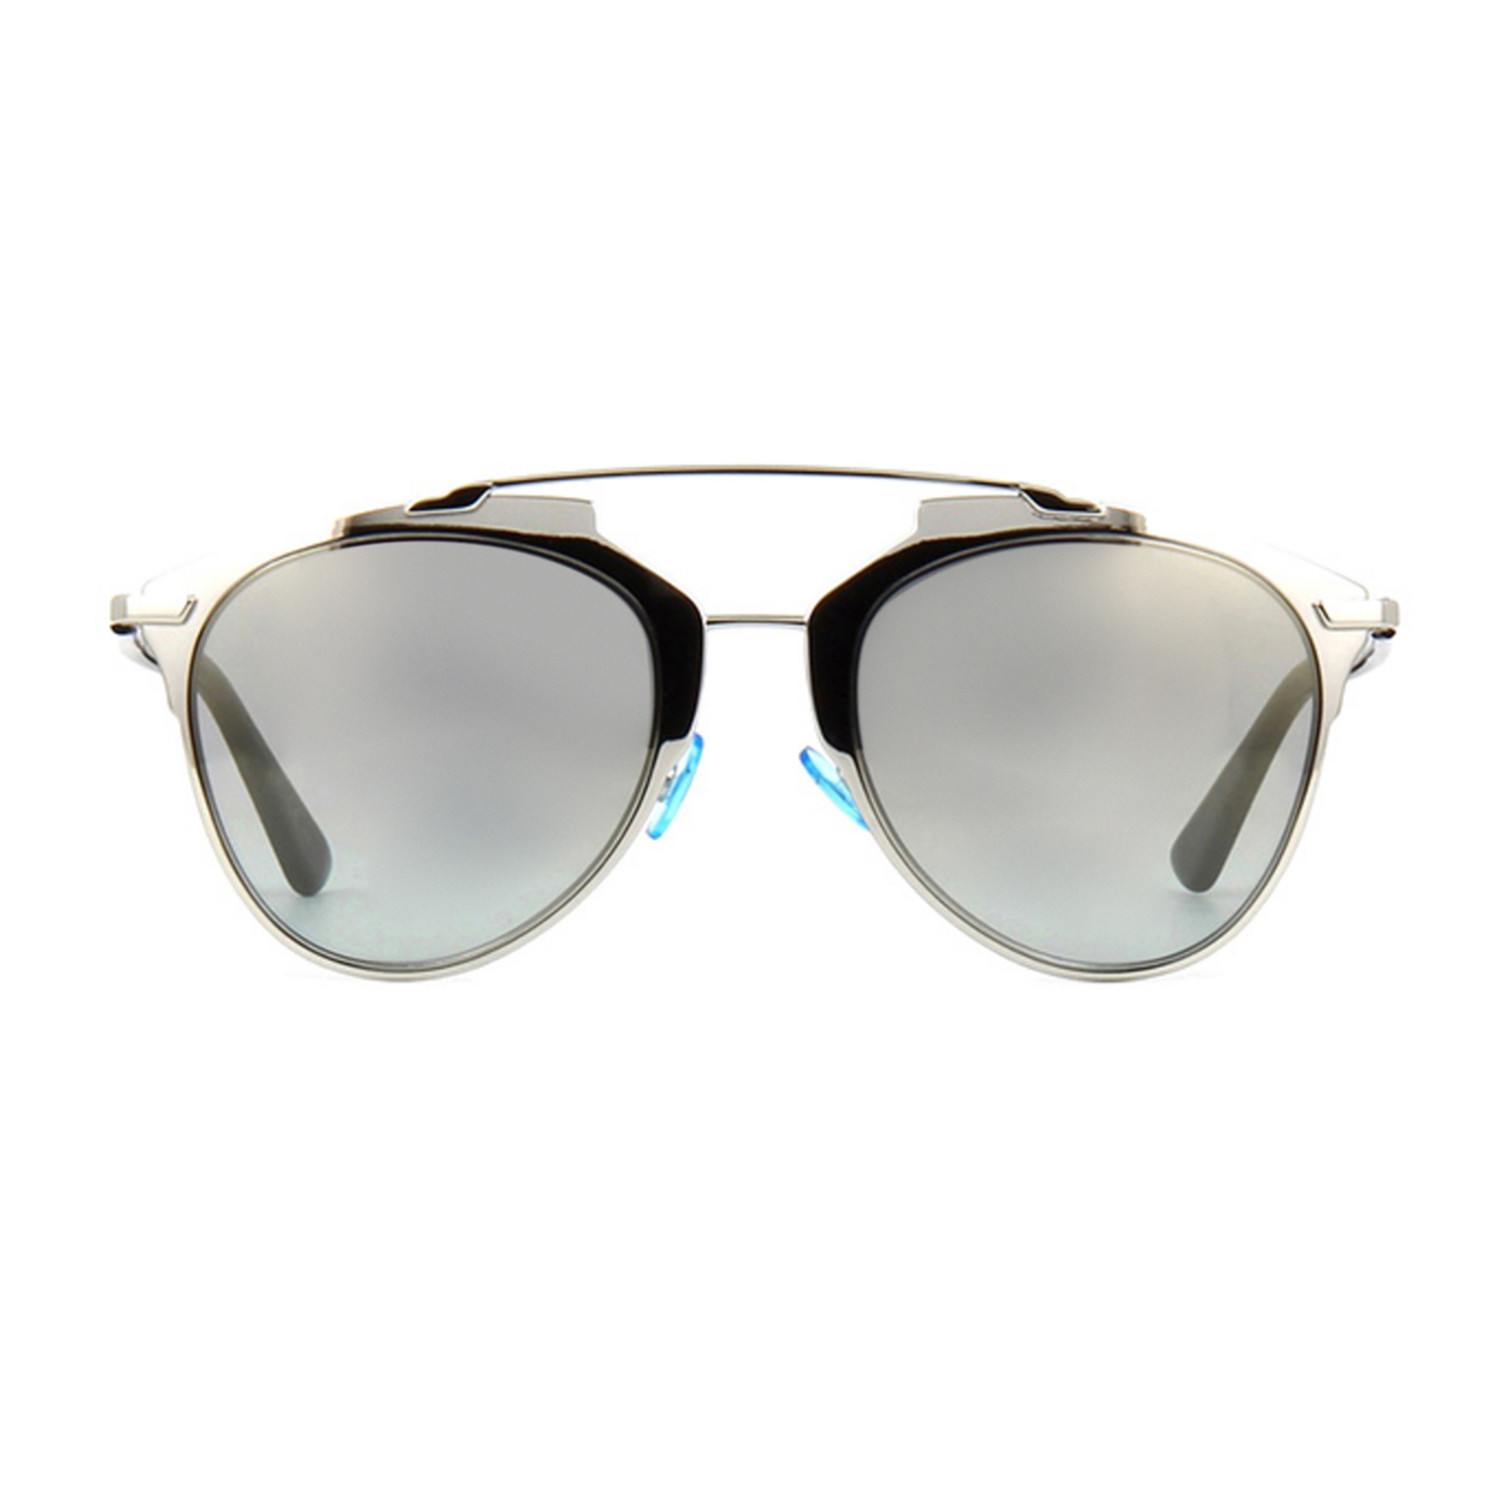 d59db2961608 6122abcc032fc5a9e743f7024cad6c94 medium · Dior    Women s Dior Reflected  Sunglasses    Silver